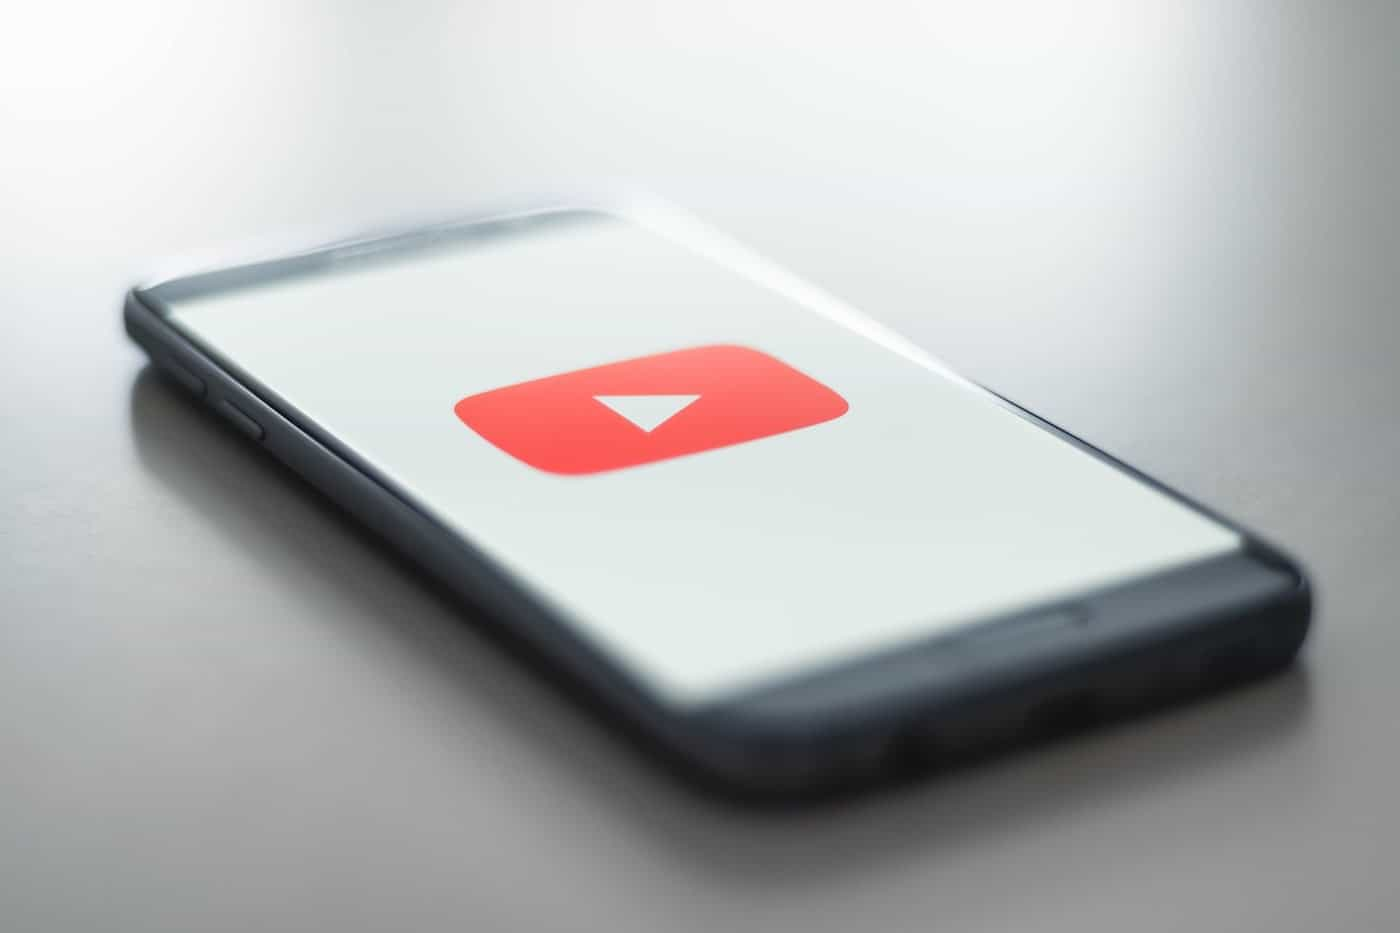 Youtube icon on a smartphone screen